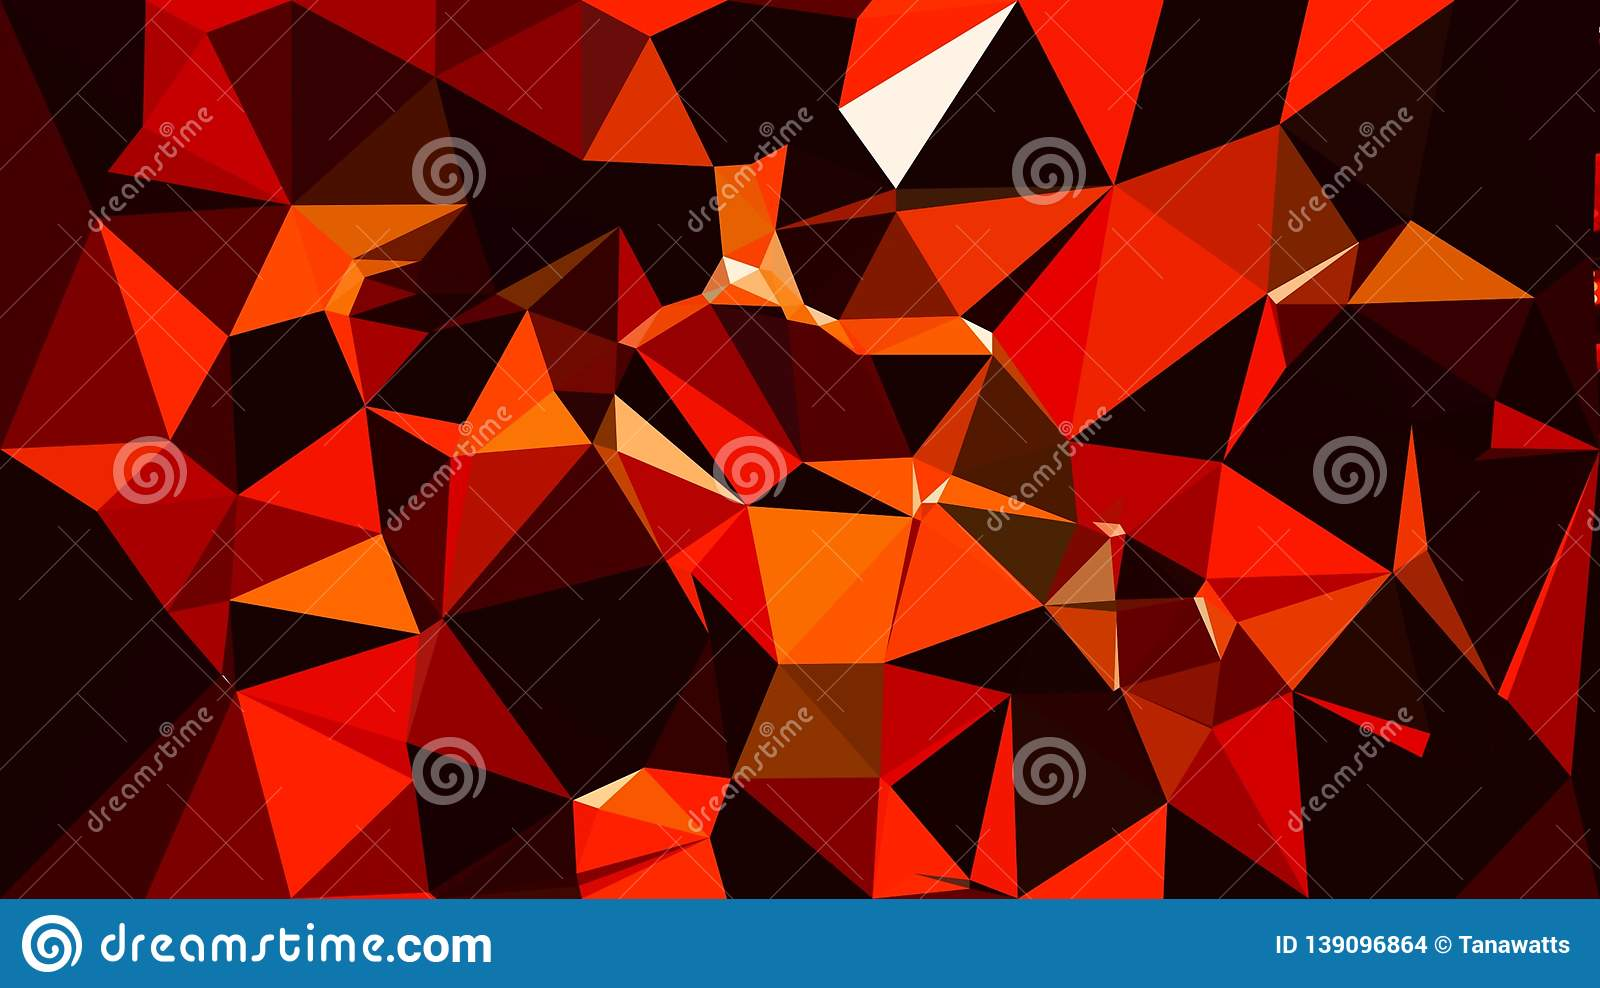 abstract fire orange red white black color background abstract fire orange red white black color wallpaper 139096864